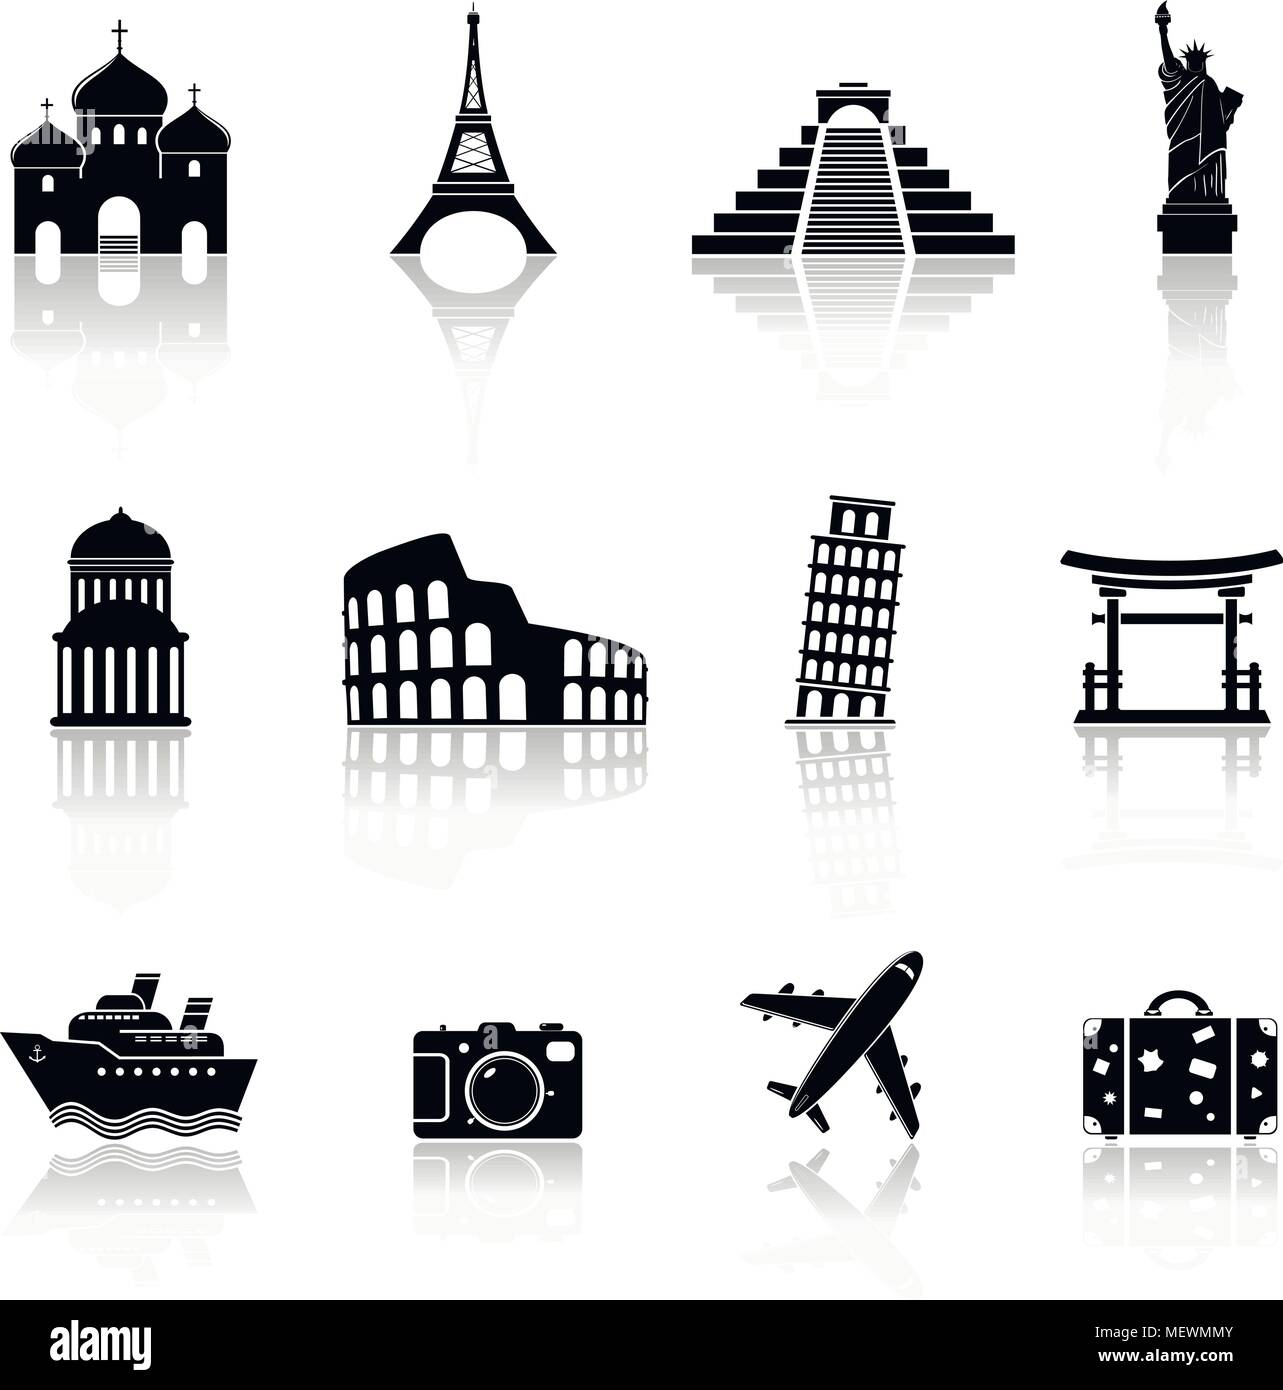 Travel and landmarks icons with reflection. Vector illustration. - Stock Image